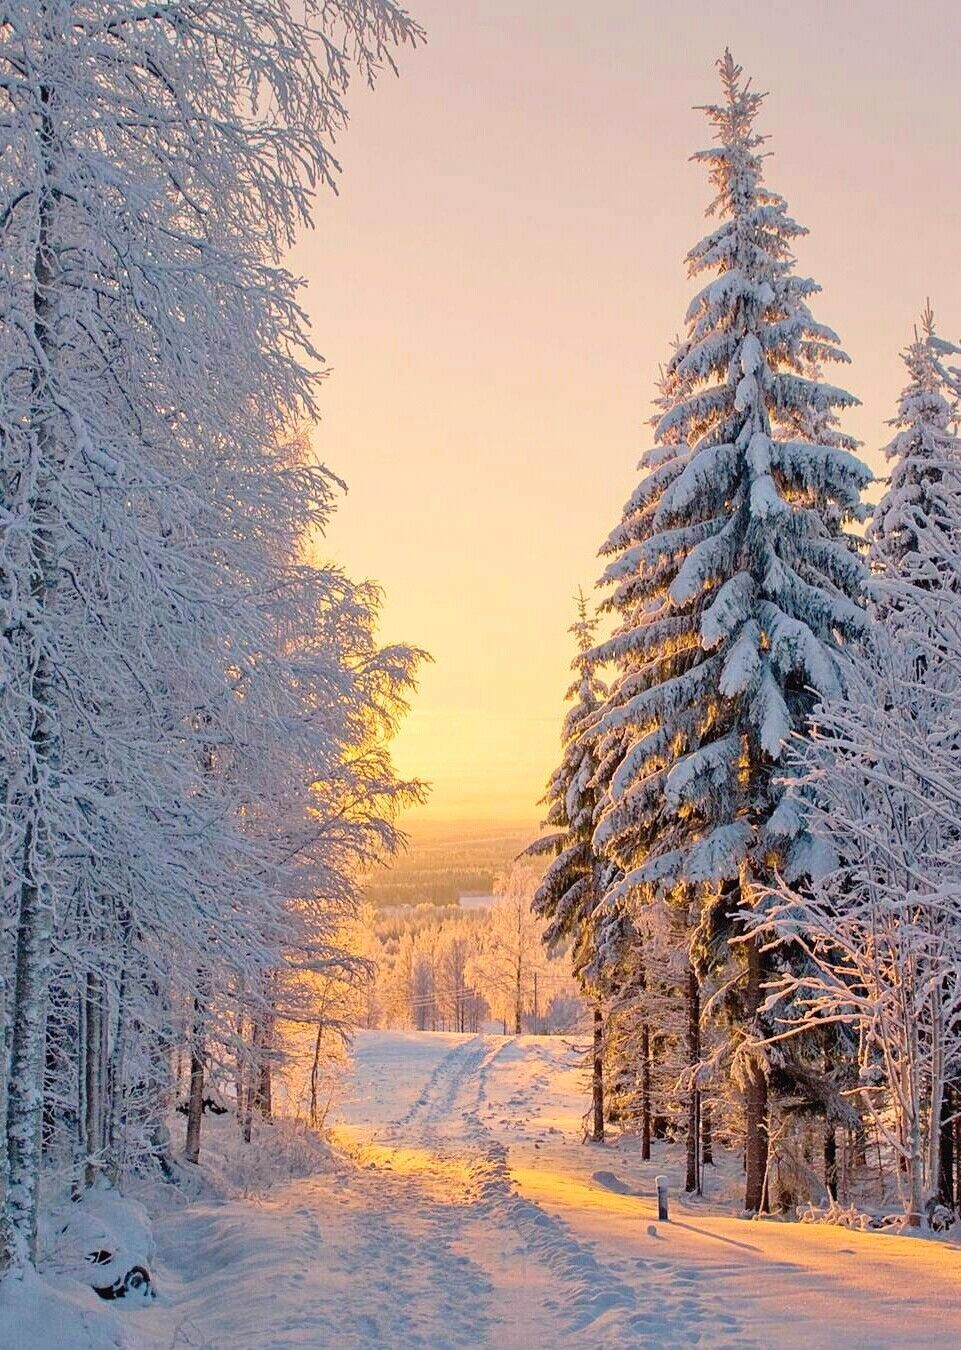 Winter Road Photographer And Location Unknown Cr Winter Nature Winter Pictures Winter Scenery